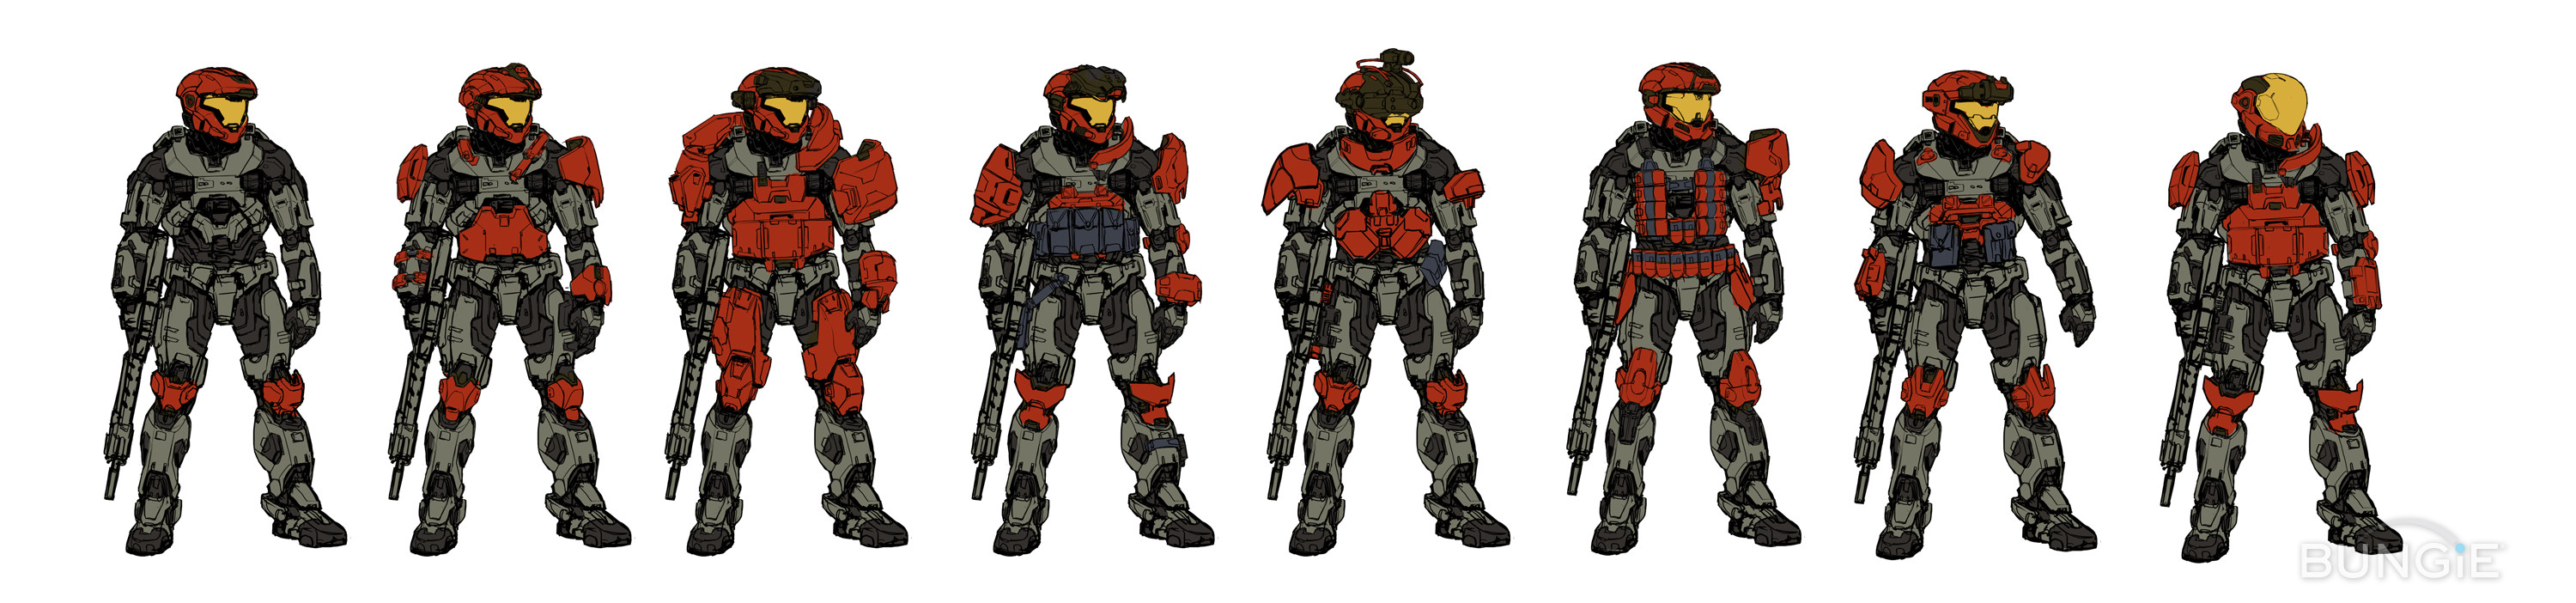 Halo Reach Mountains coloring #11, Download drawings